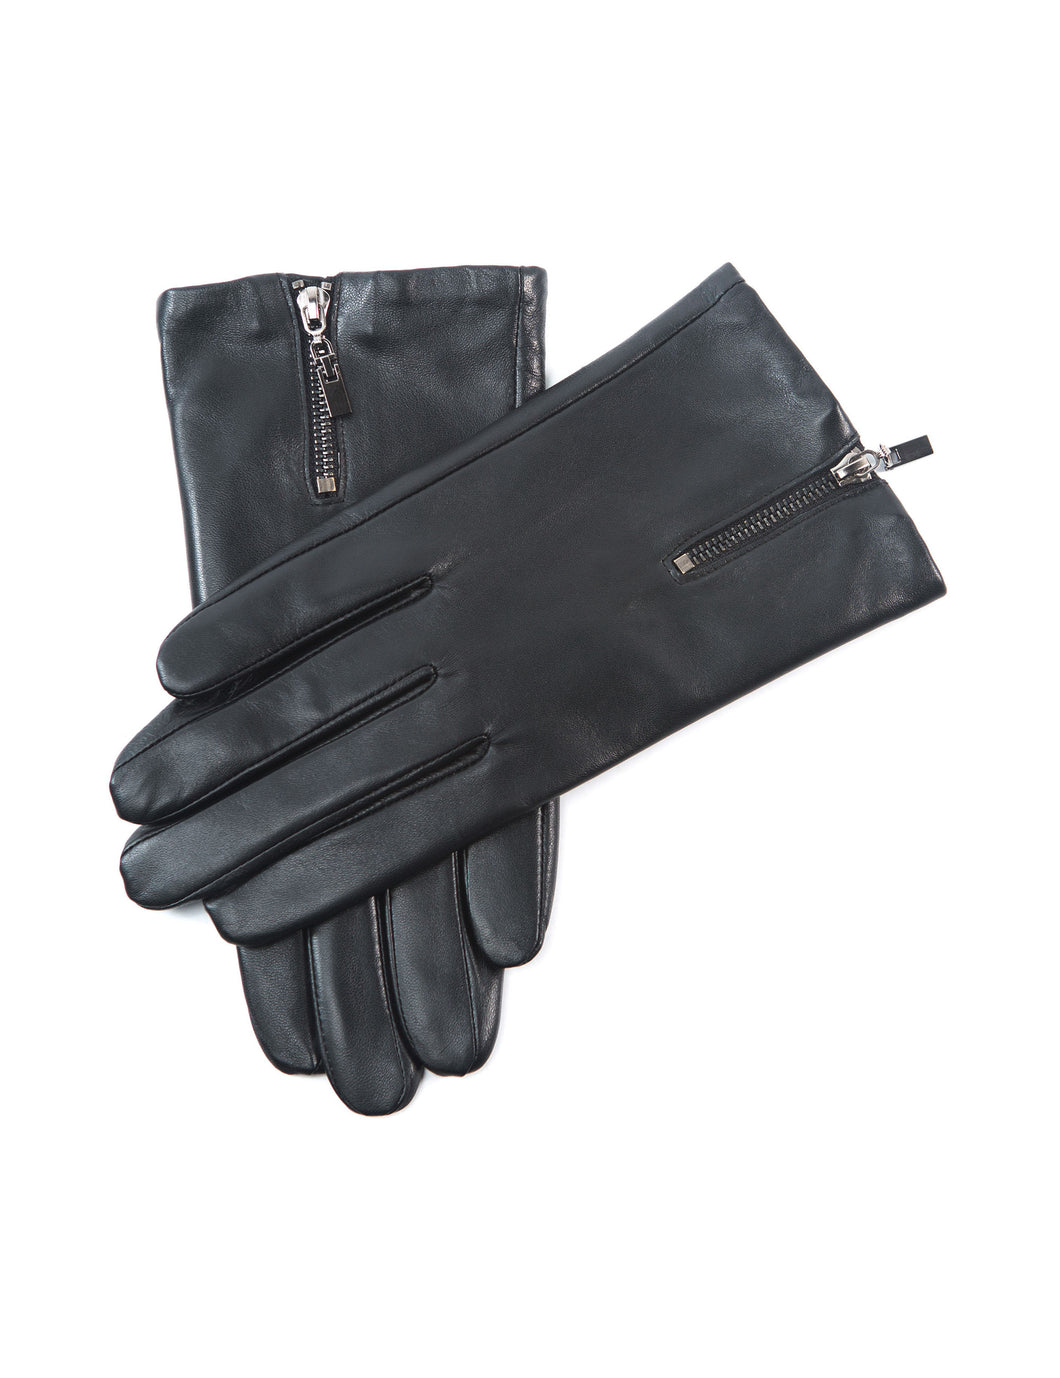 YISEVEN Women Touchscreen Lambskin Leather Gloves Short Cuff